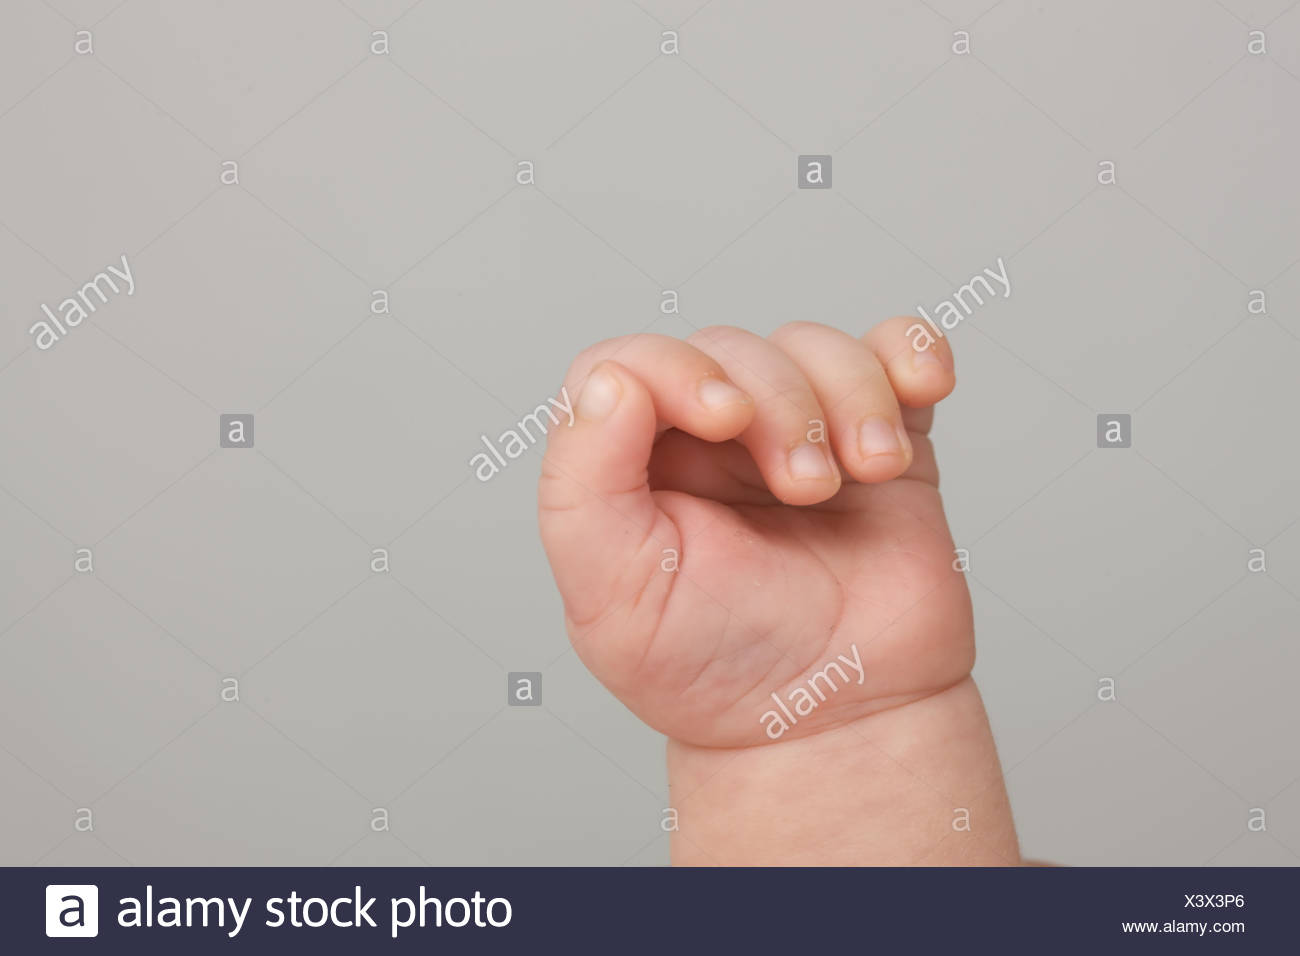 Woman's hand and Baybfinger - Stock Image